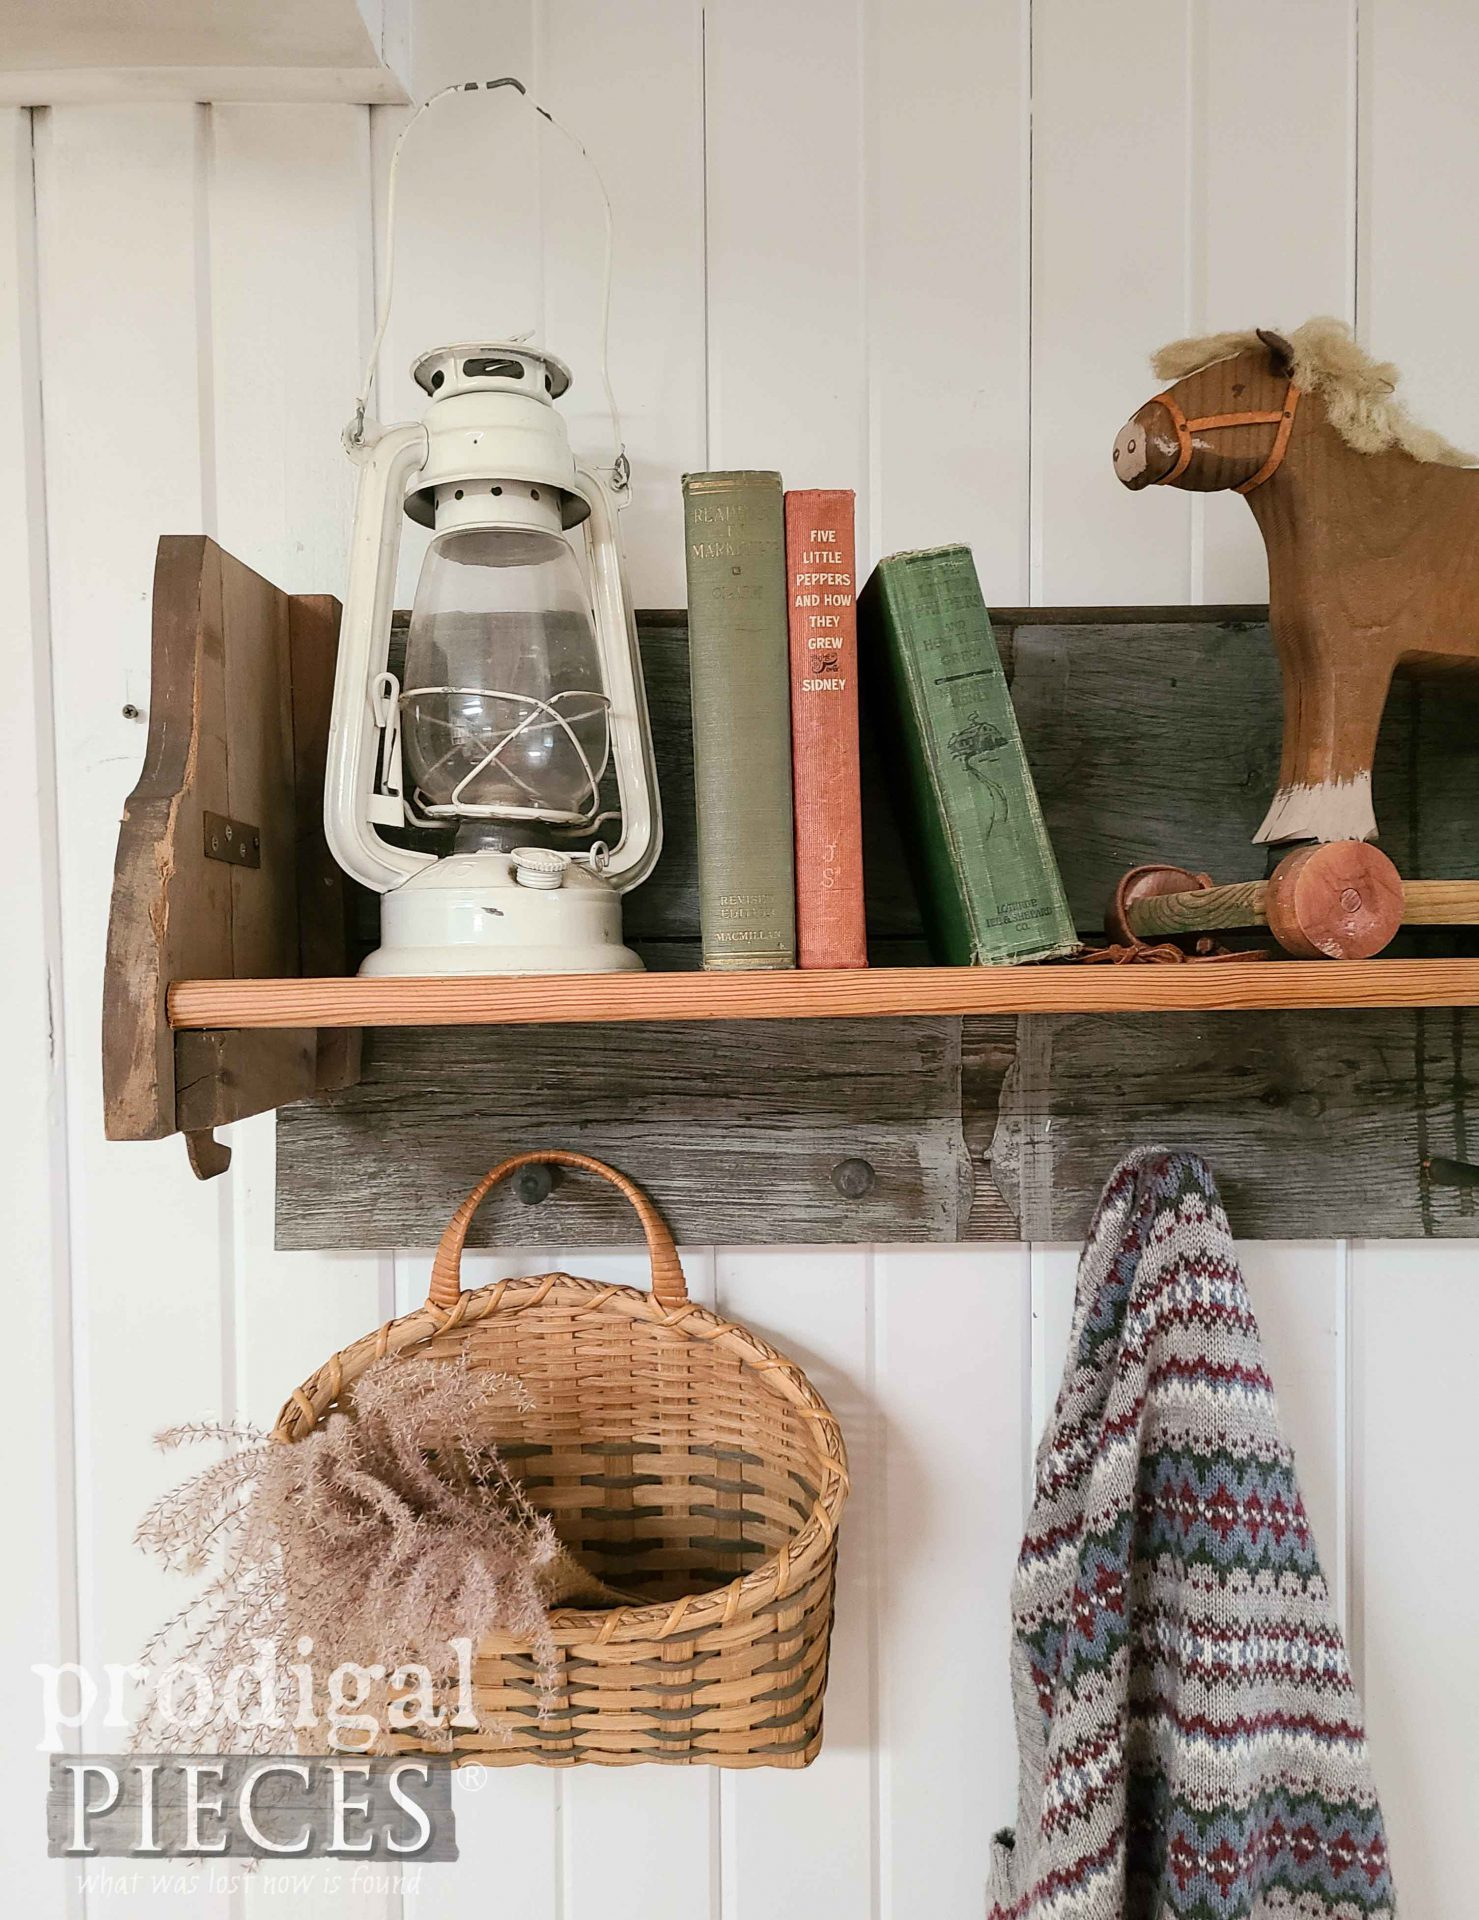 DIY Build Reclaimed Shelf Rack for Rustic Farmhouse Style by Larissa of Prodigal Pieces   prodigalpieces.com #prodigalpieces #farmhouse #diy #woodworking